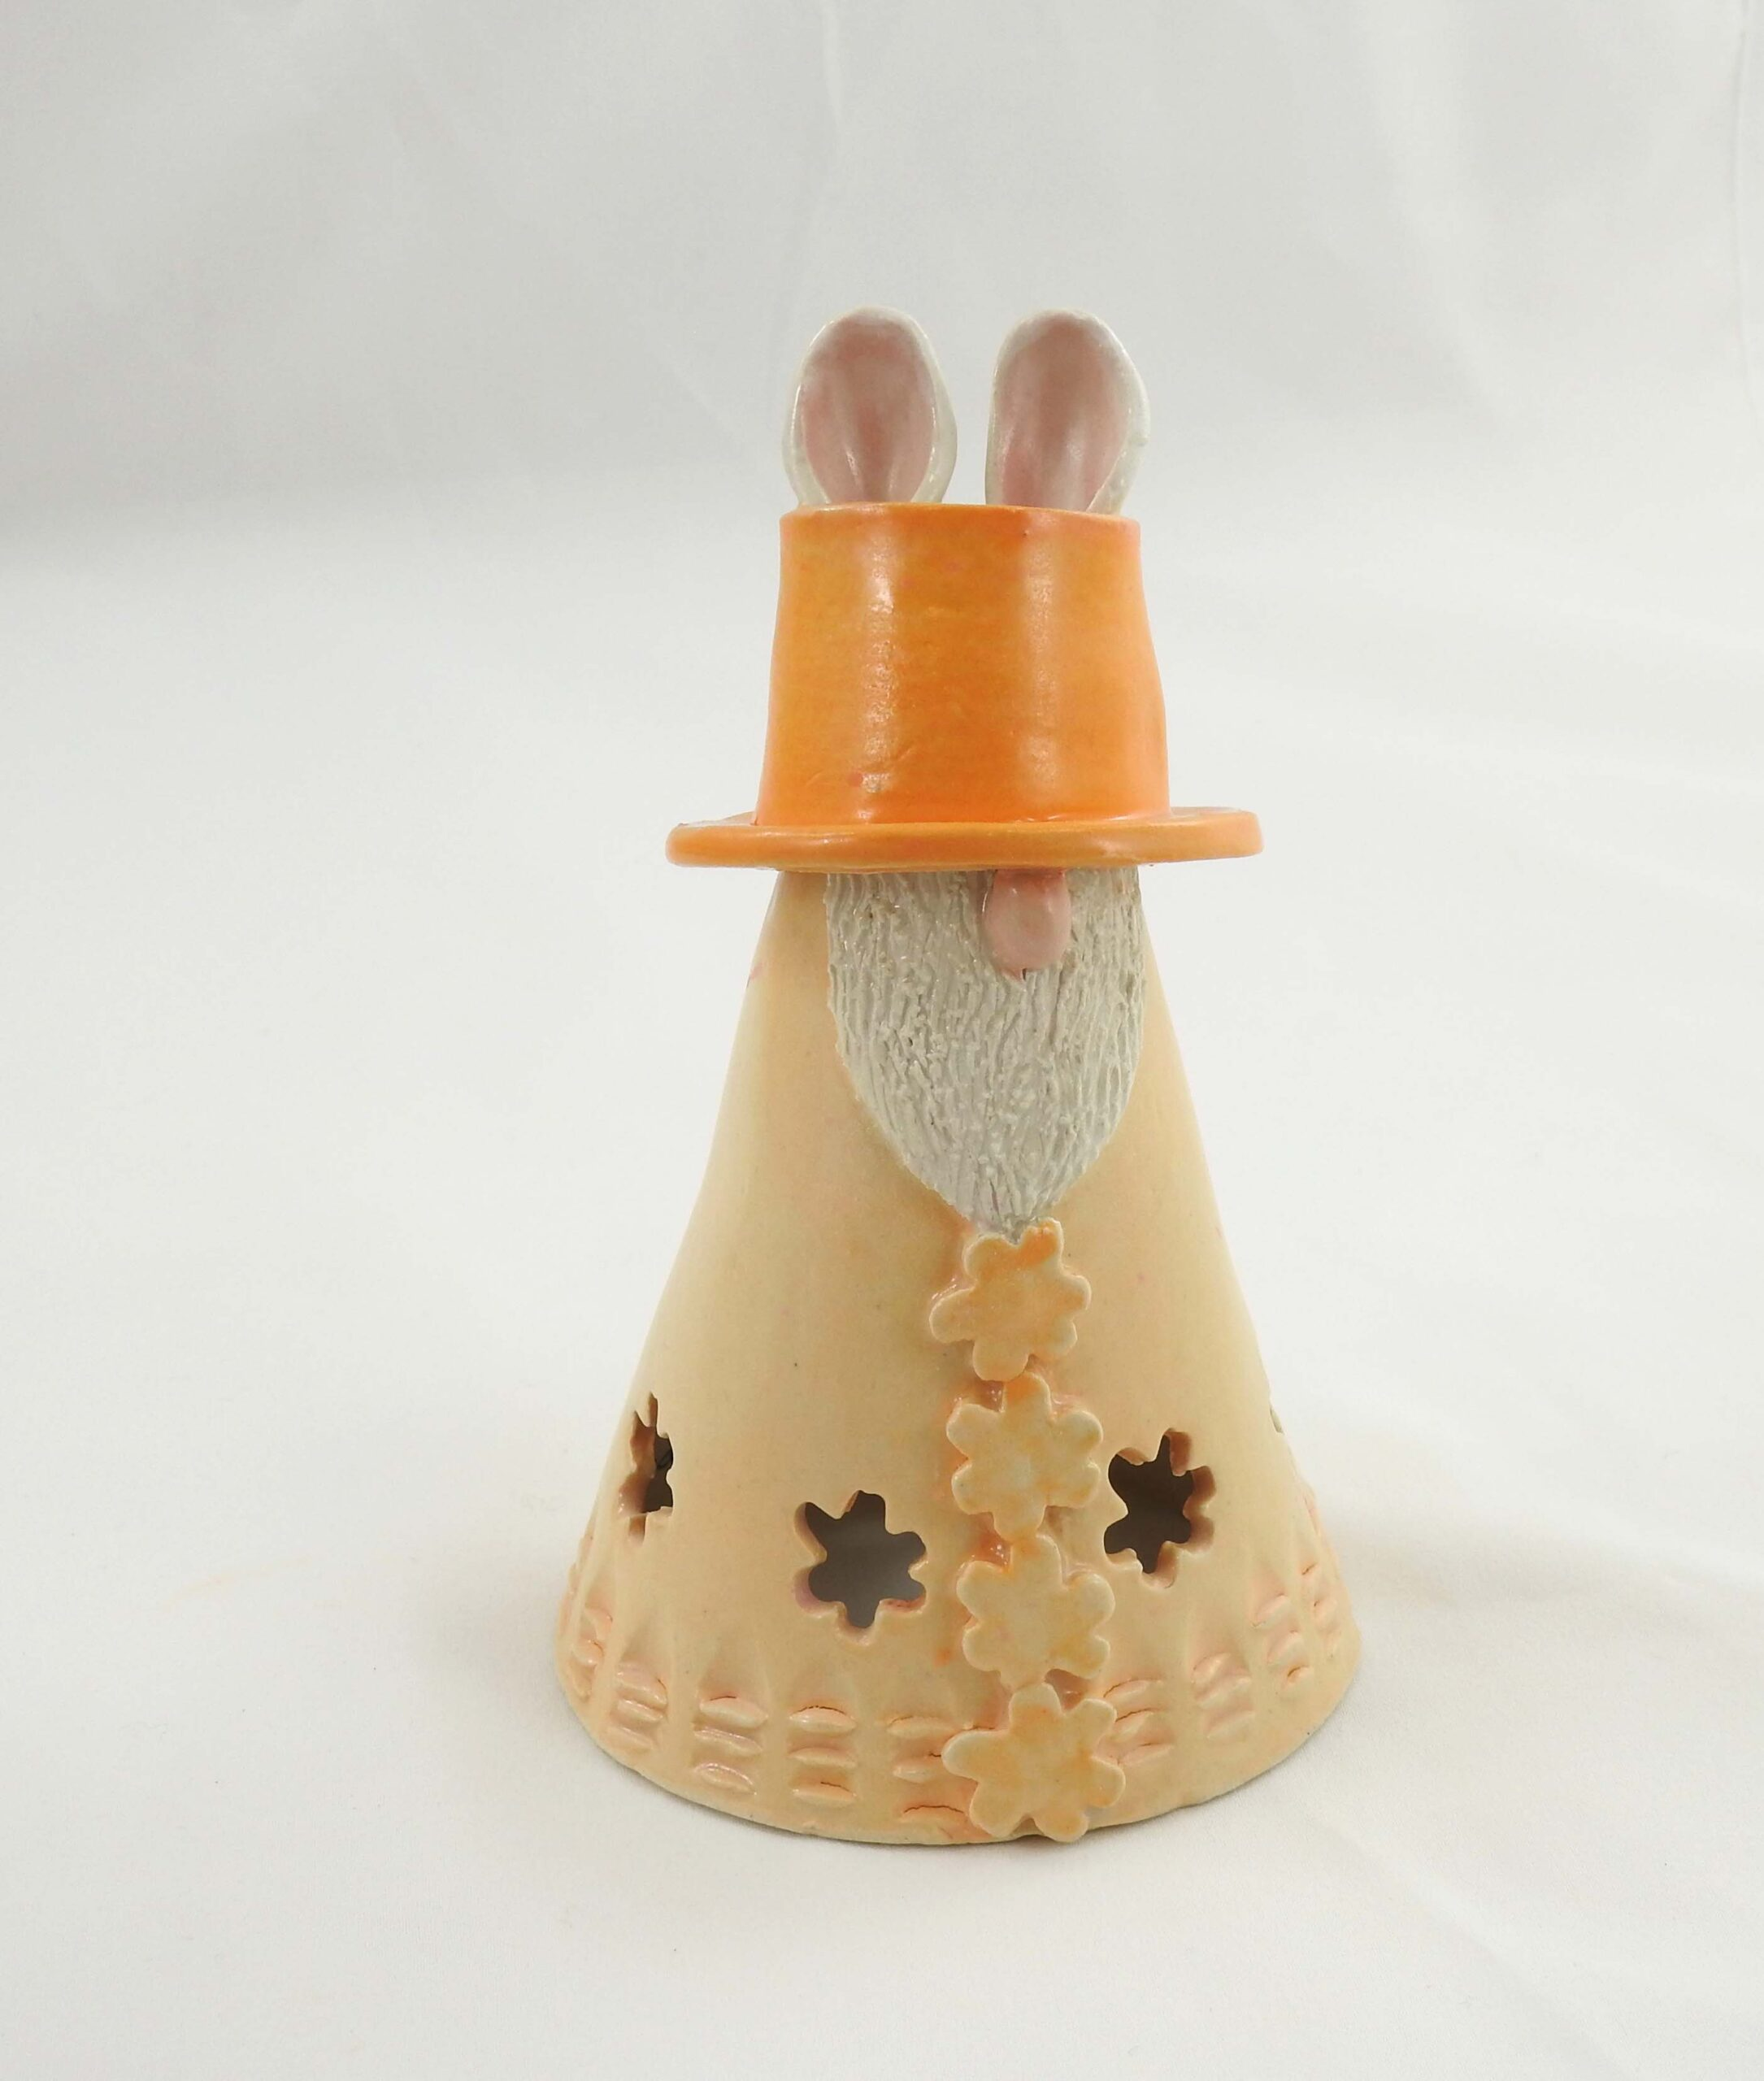 Hand-built Ceramic Easter Bunny Gnome